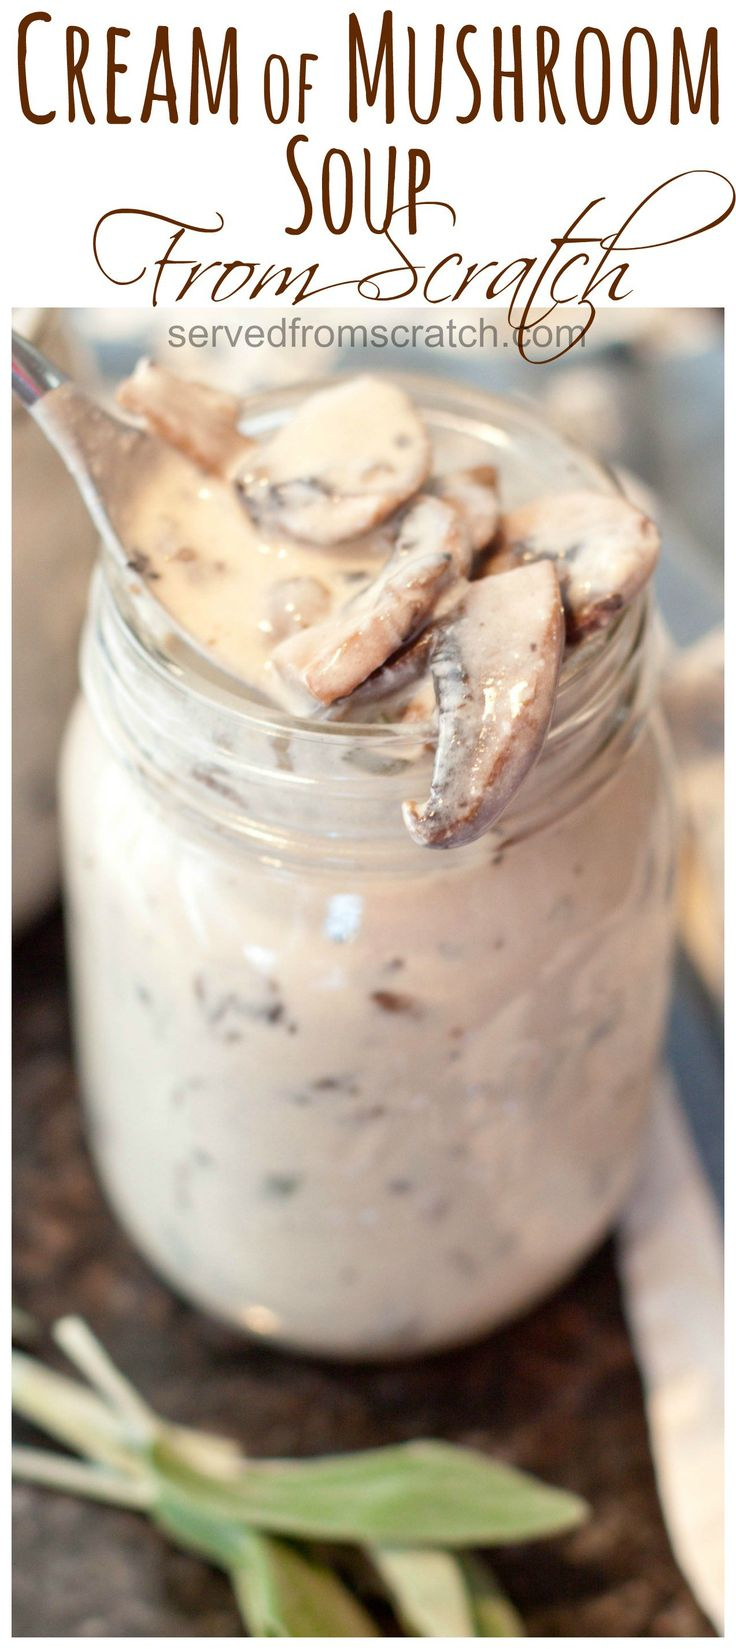 Ditch the can! Make your own Cream of Mushroom Soup from scratch!